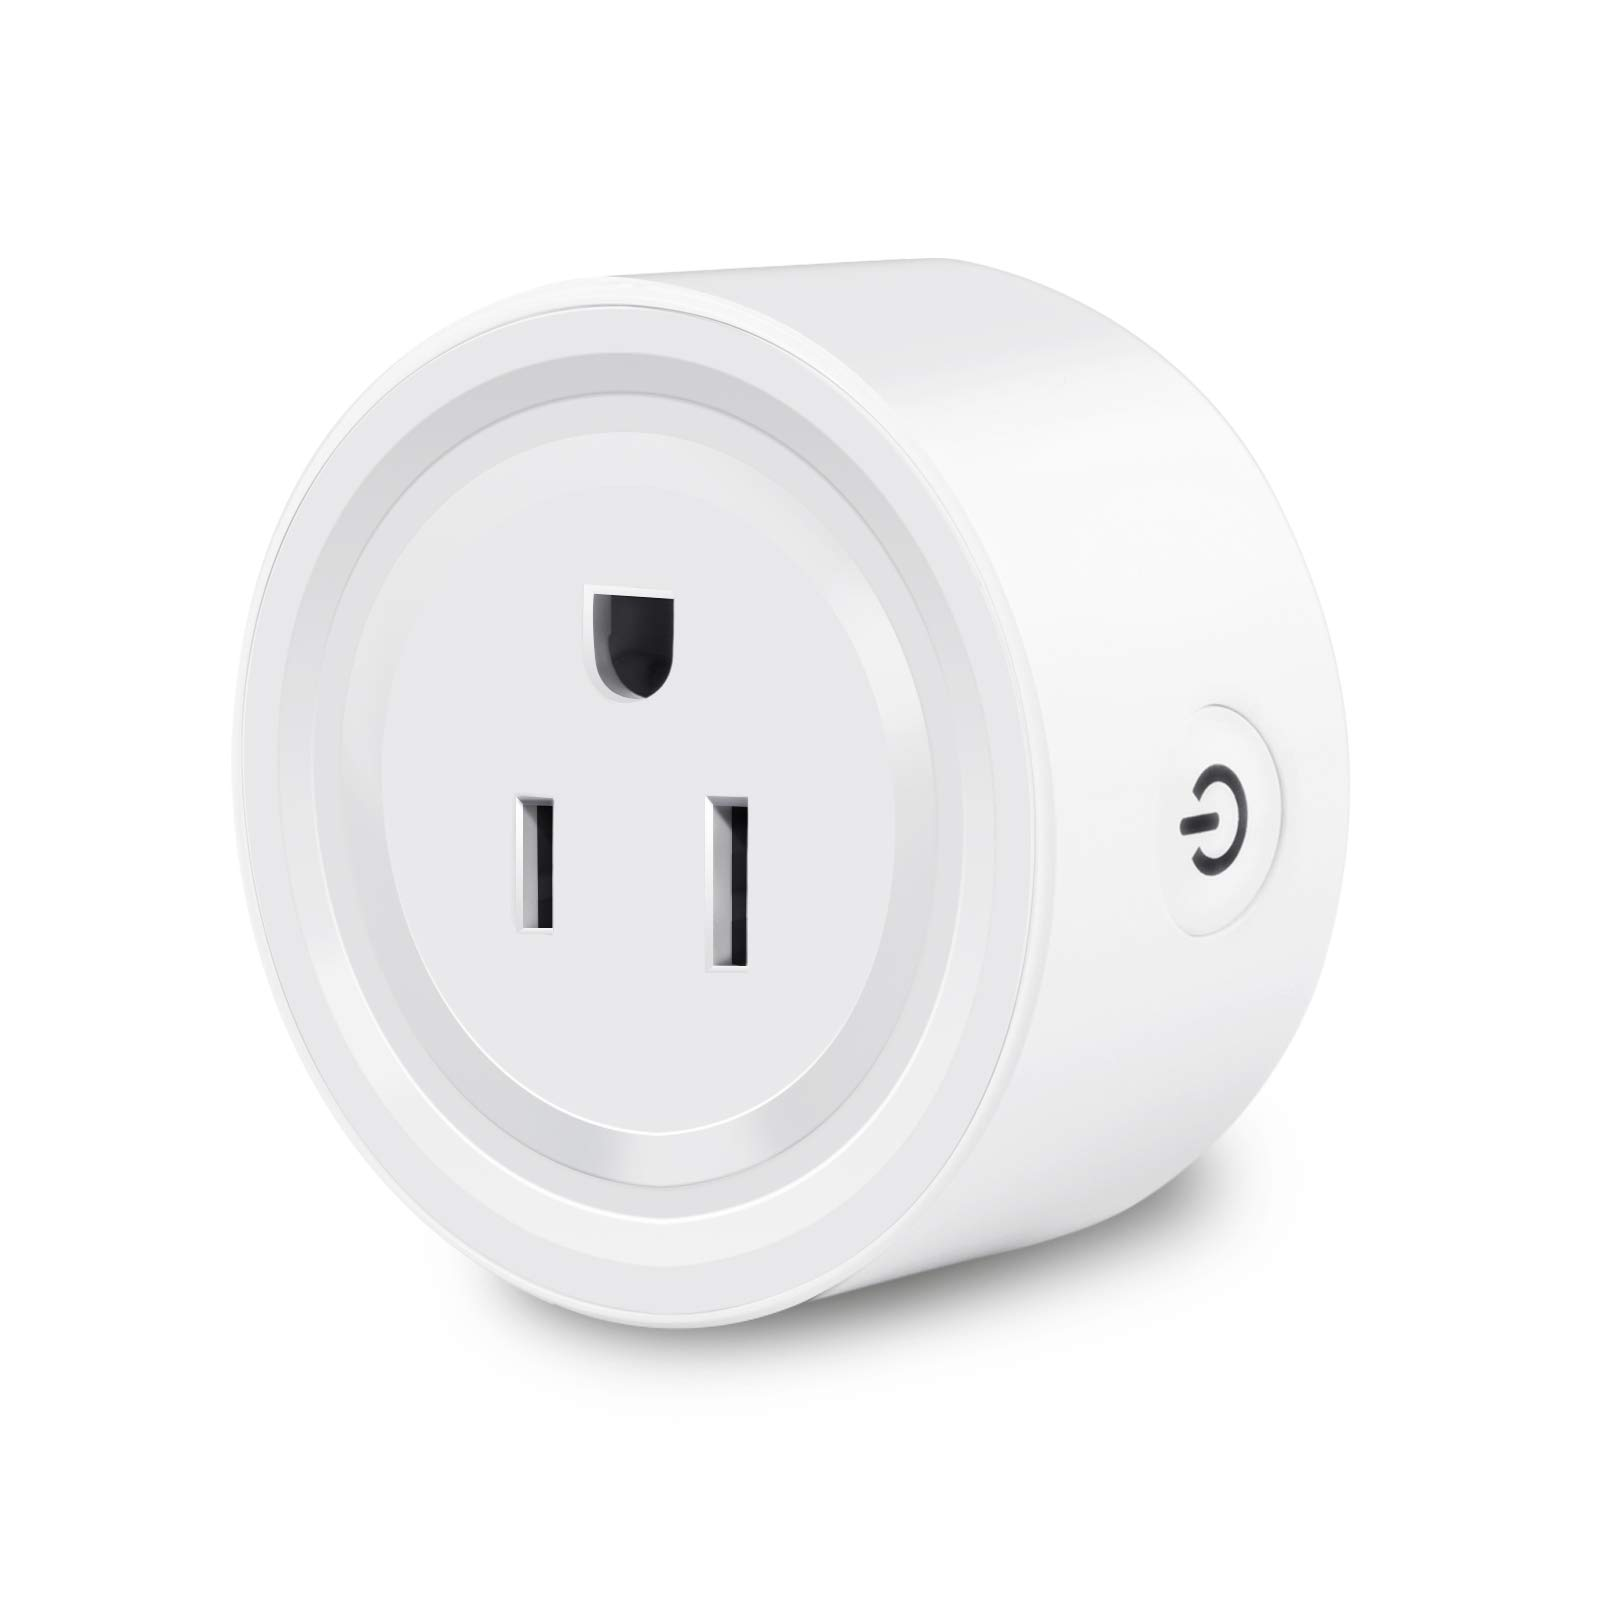 WiFi Smart Plug Socket Outlet Plug MINI That Work with Alexa Wireless Plug Outlet for Smart Home Compatible with Echo IFTTT Google Assistant with Timer Smartlife App Remote Control No Hub Required